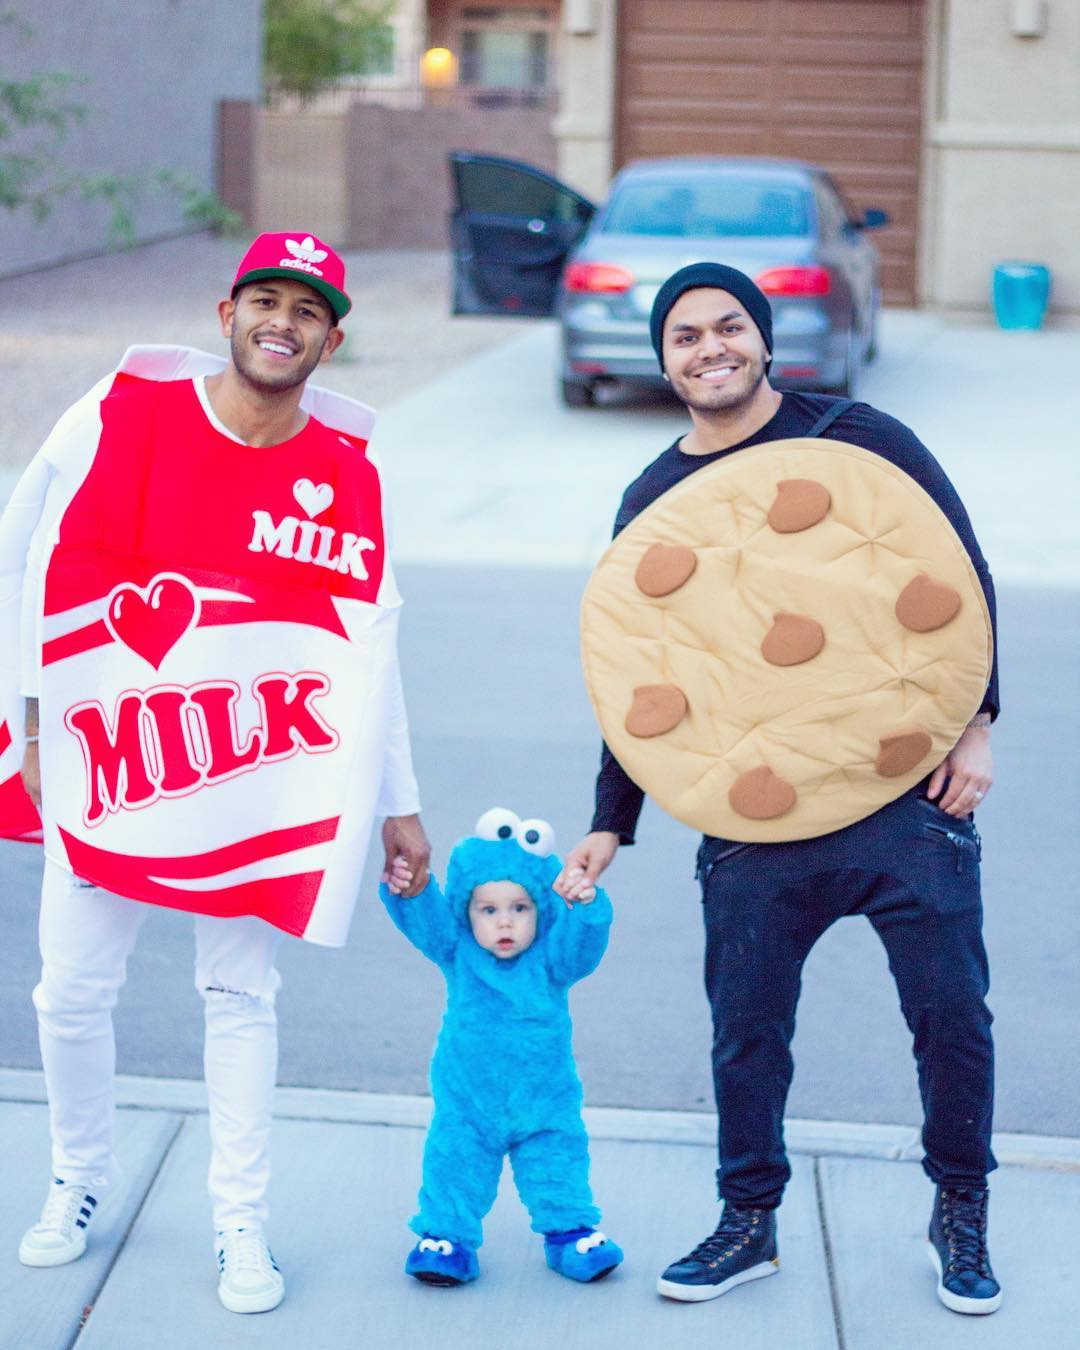 Milk, cookies and cookie monster trio Halloween costume for family